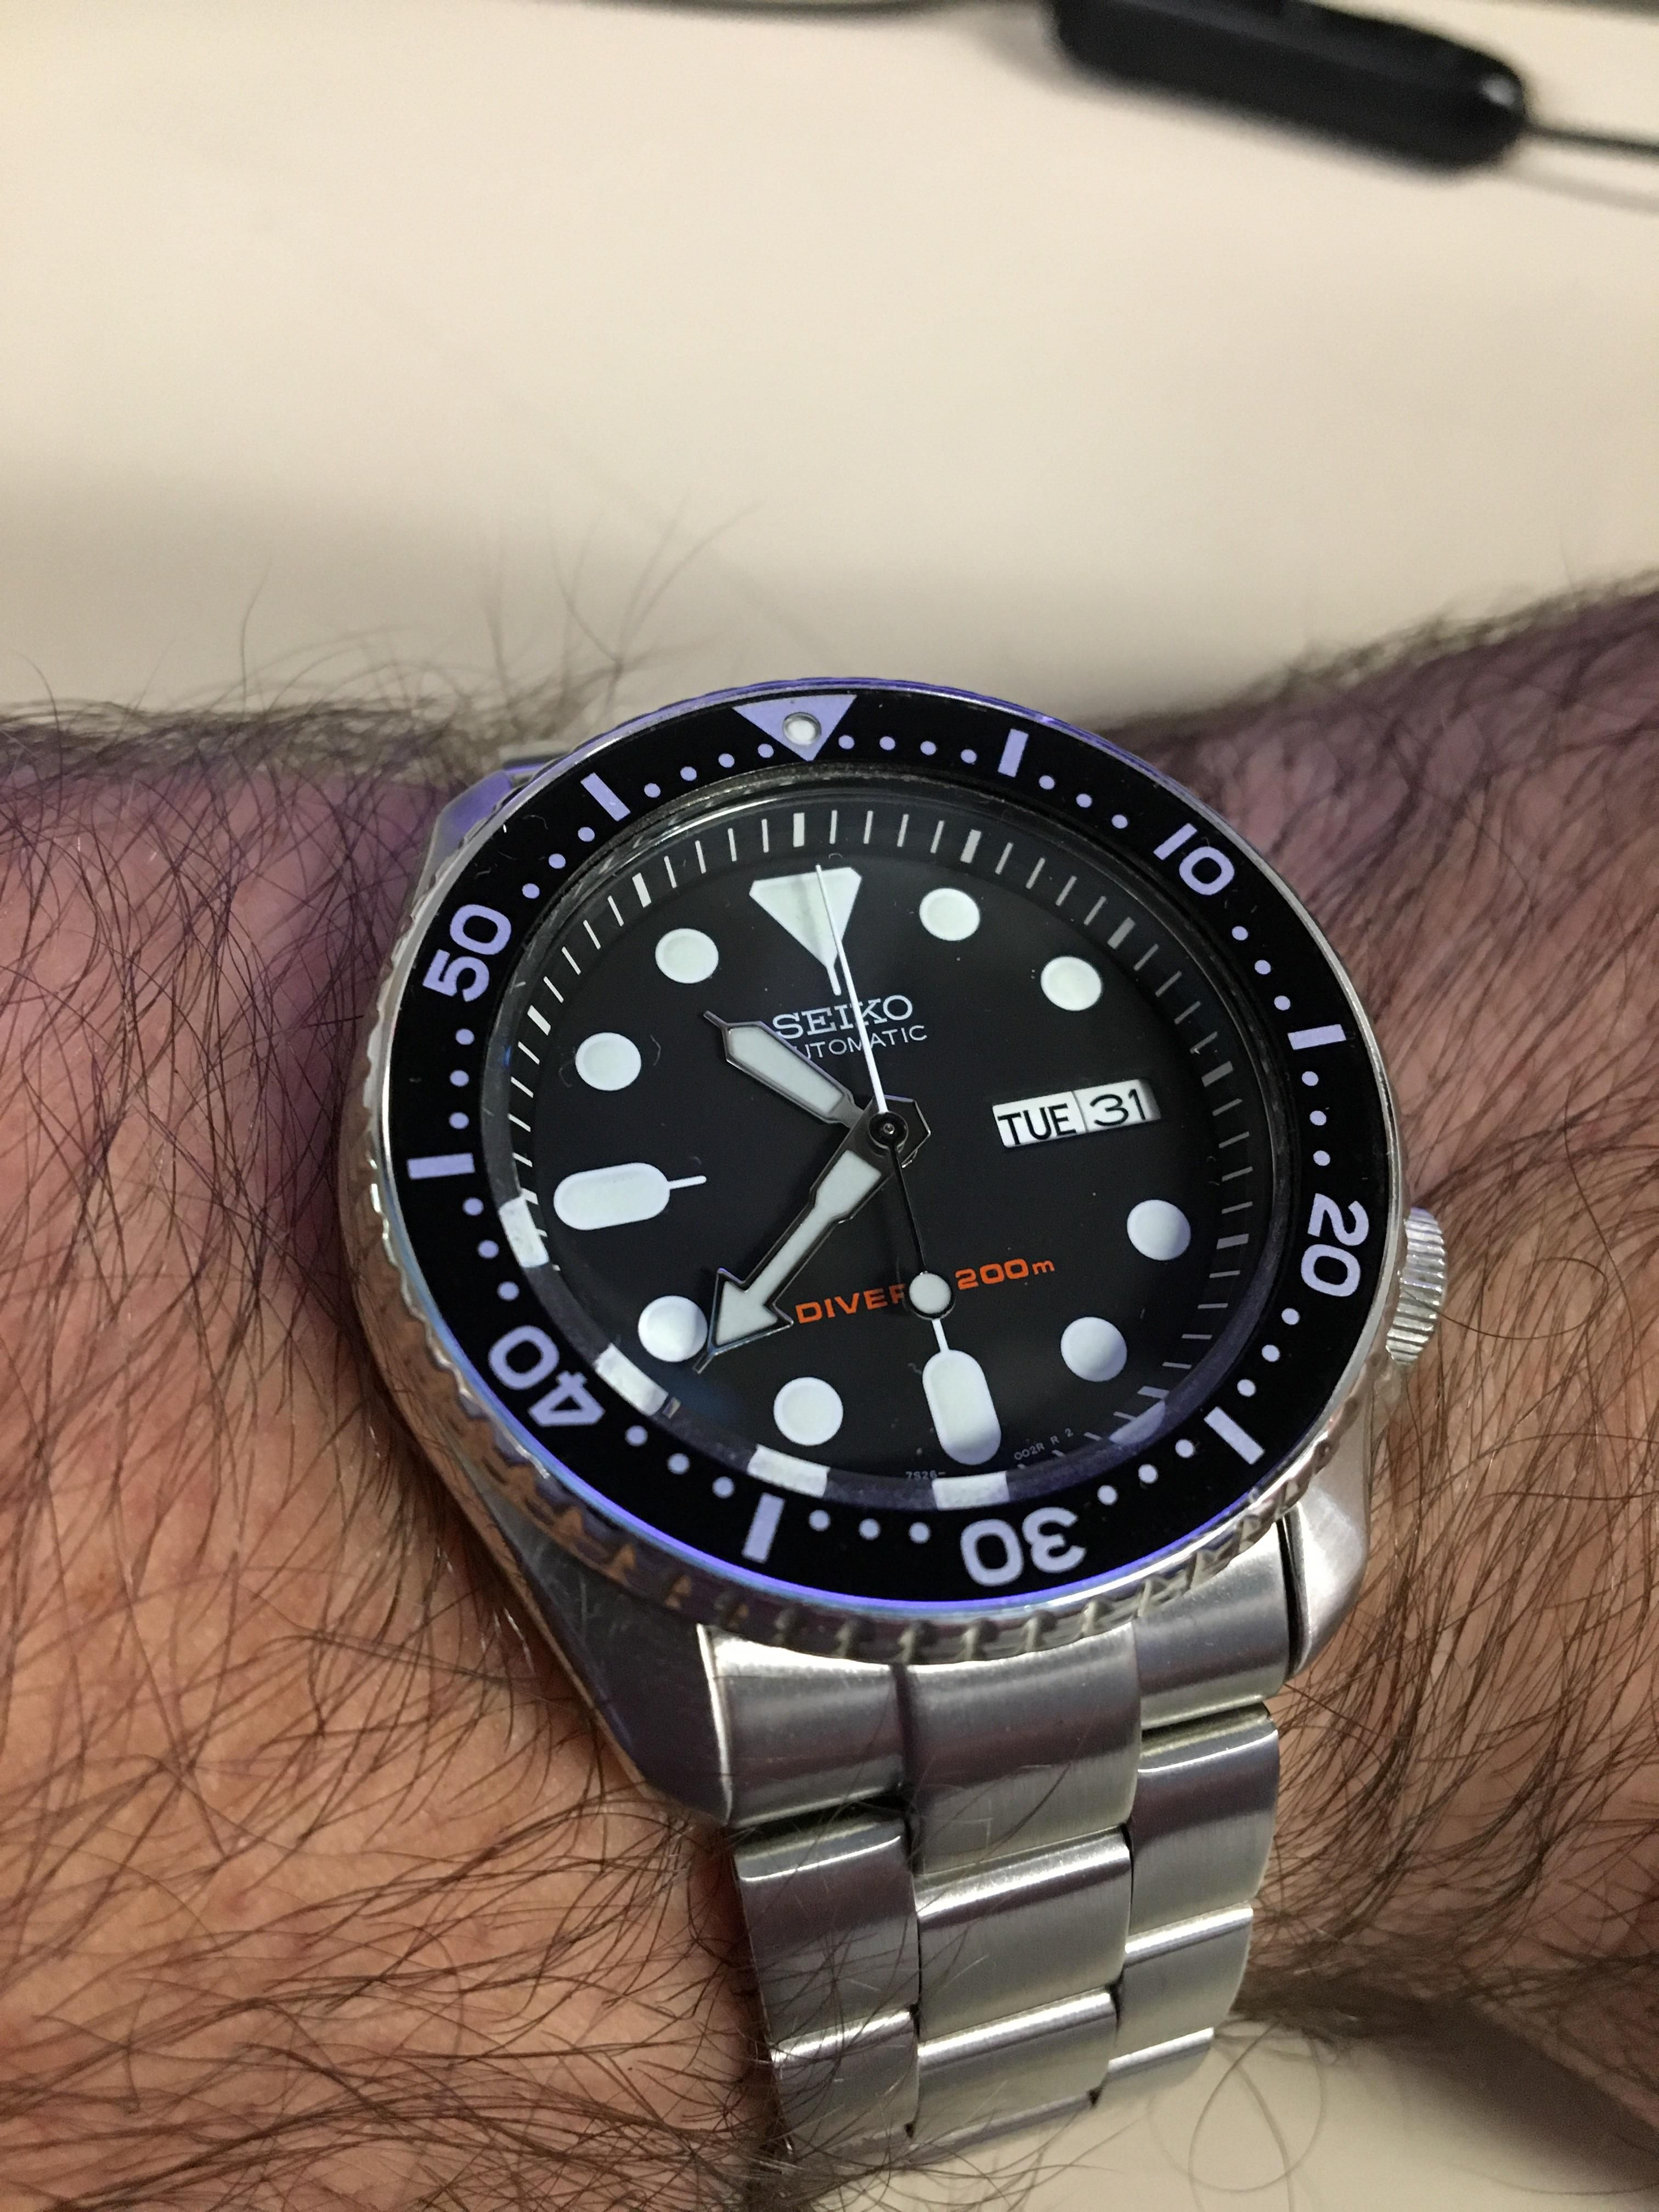 37dcced29a5 Seiko  Finally picked up a Super Oyster bracelet for my SKX007 ...